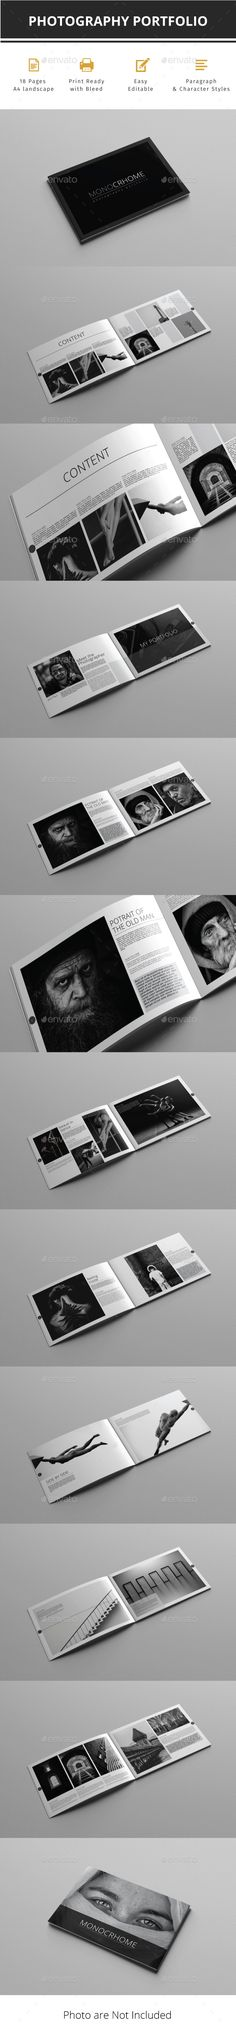 Portfolio Brochure Template InDesign INDD - 18 Pages A4 - Download: https://graphicriver.net/item/portfolio-indesign-template/21736227?ref=ksioks